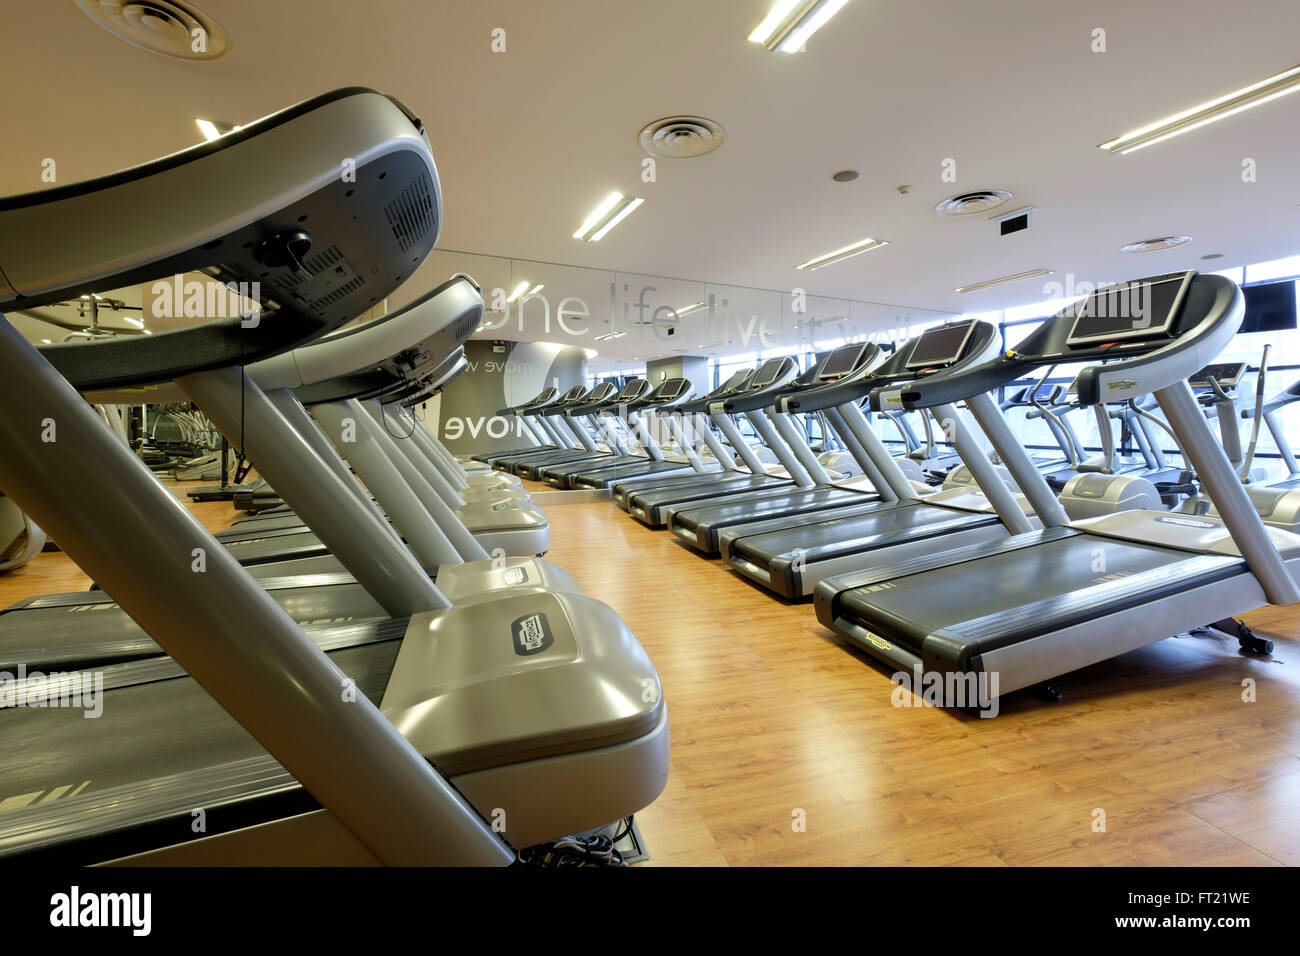 Rows of vacant treadmills at an empty gym - Stock Image